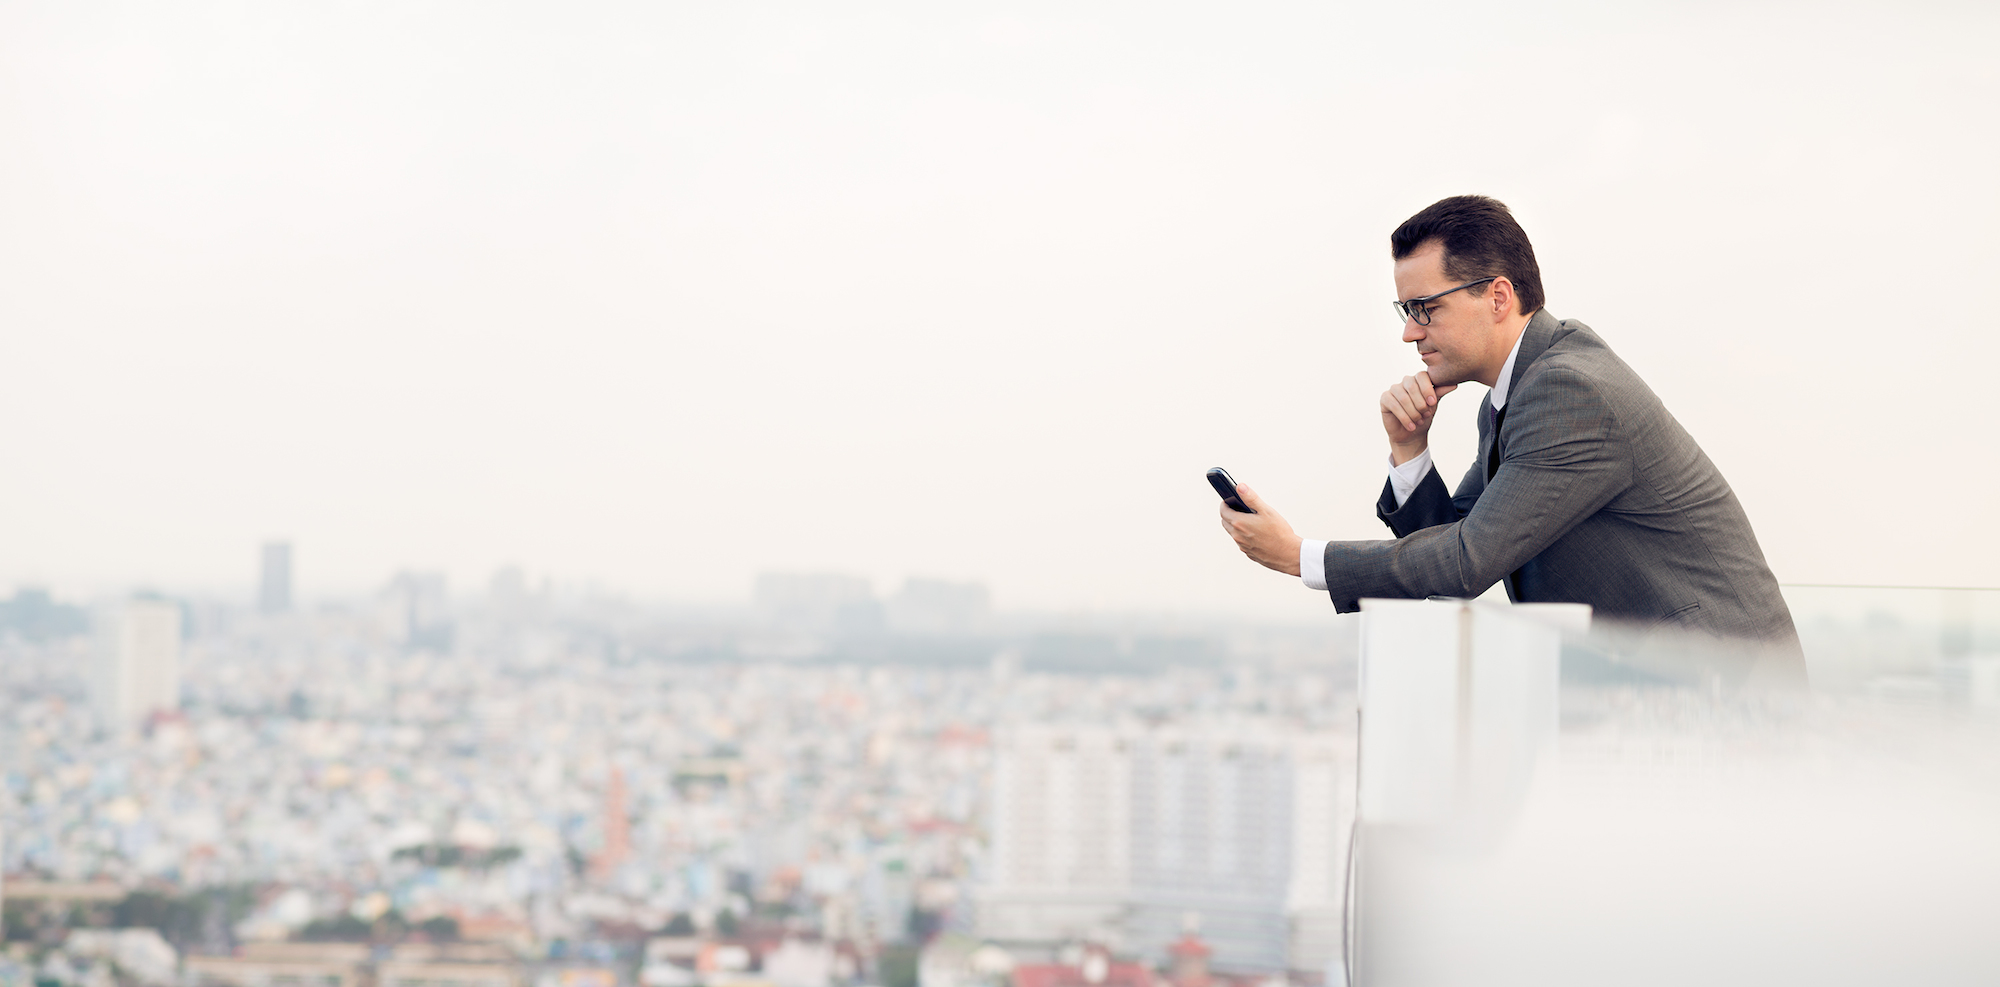 business-man-on-smartphone